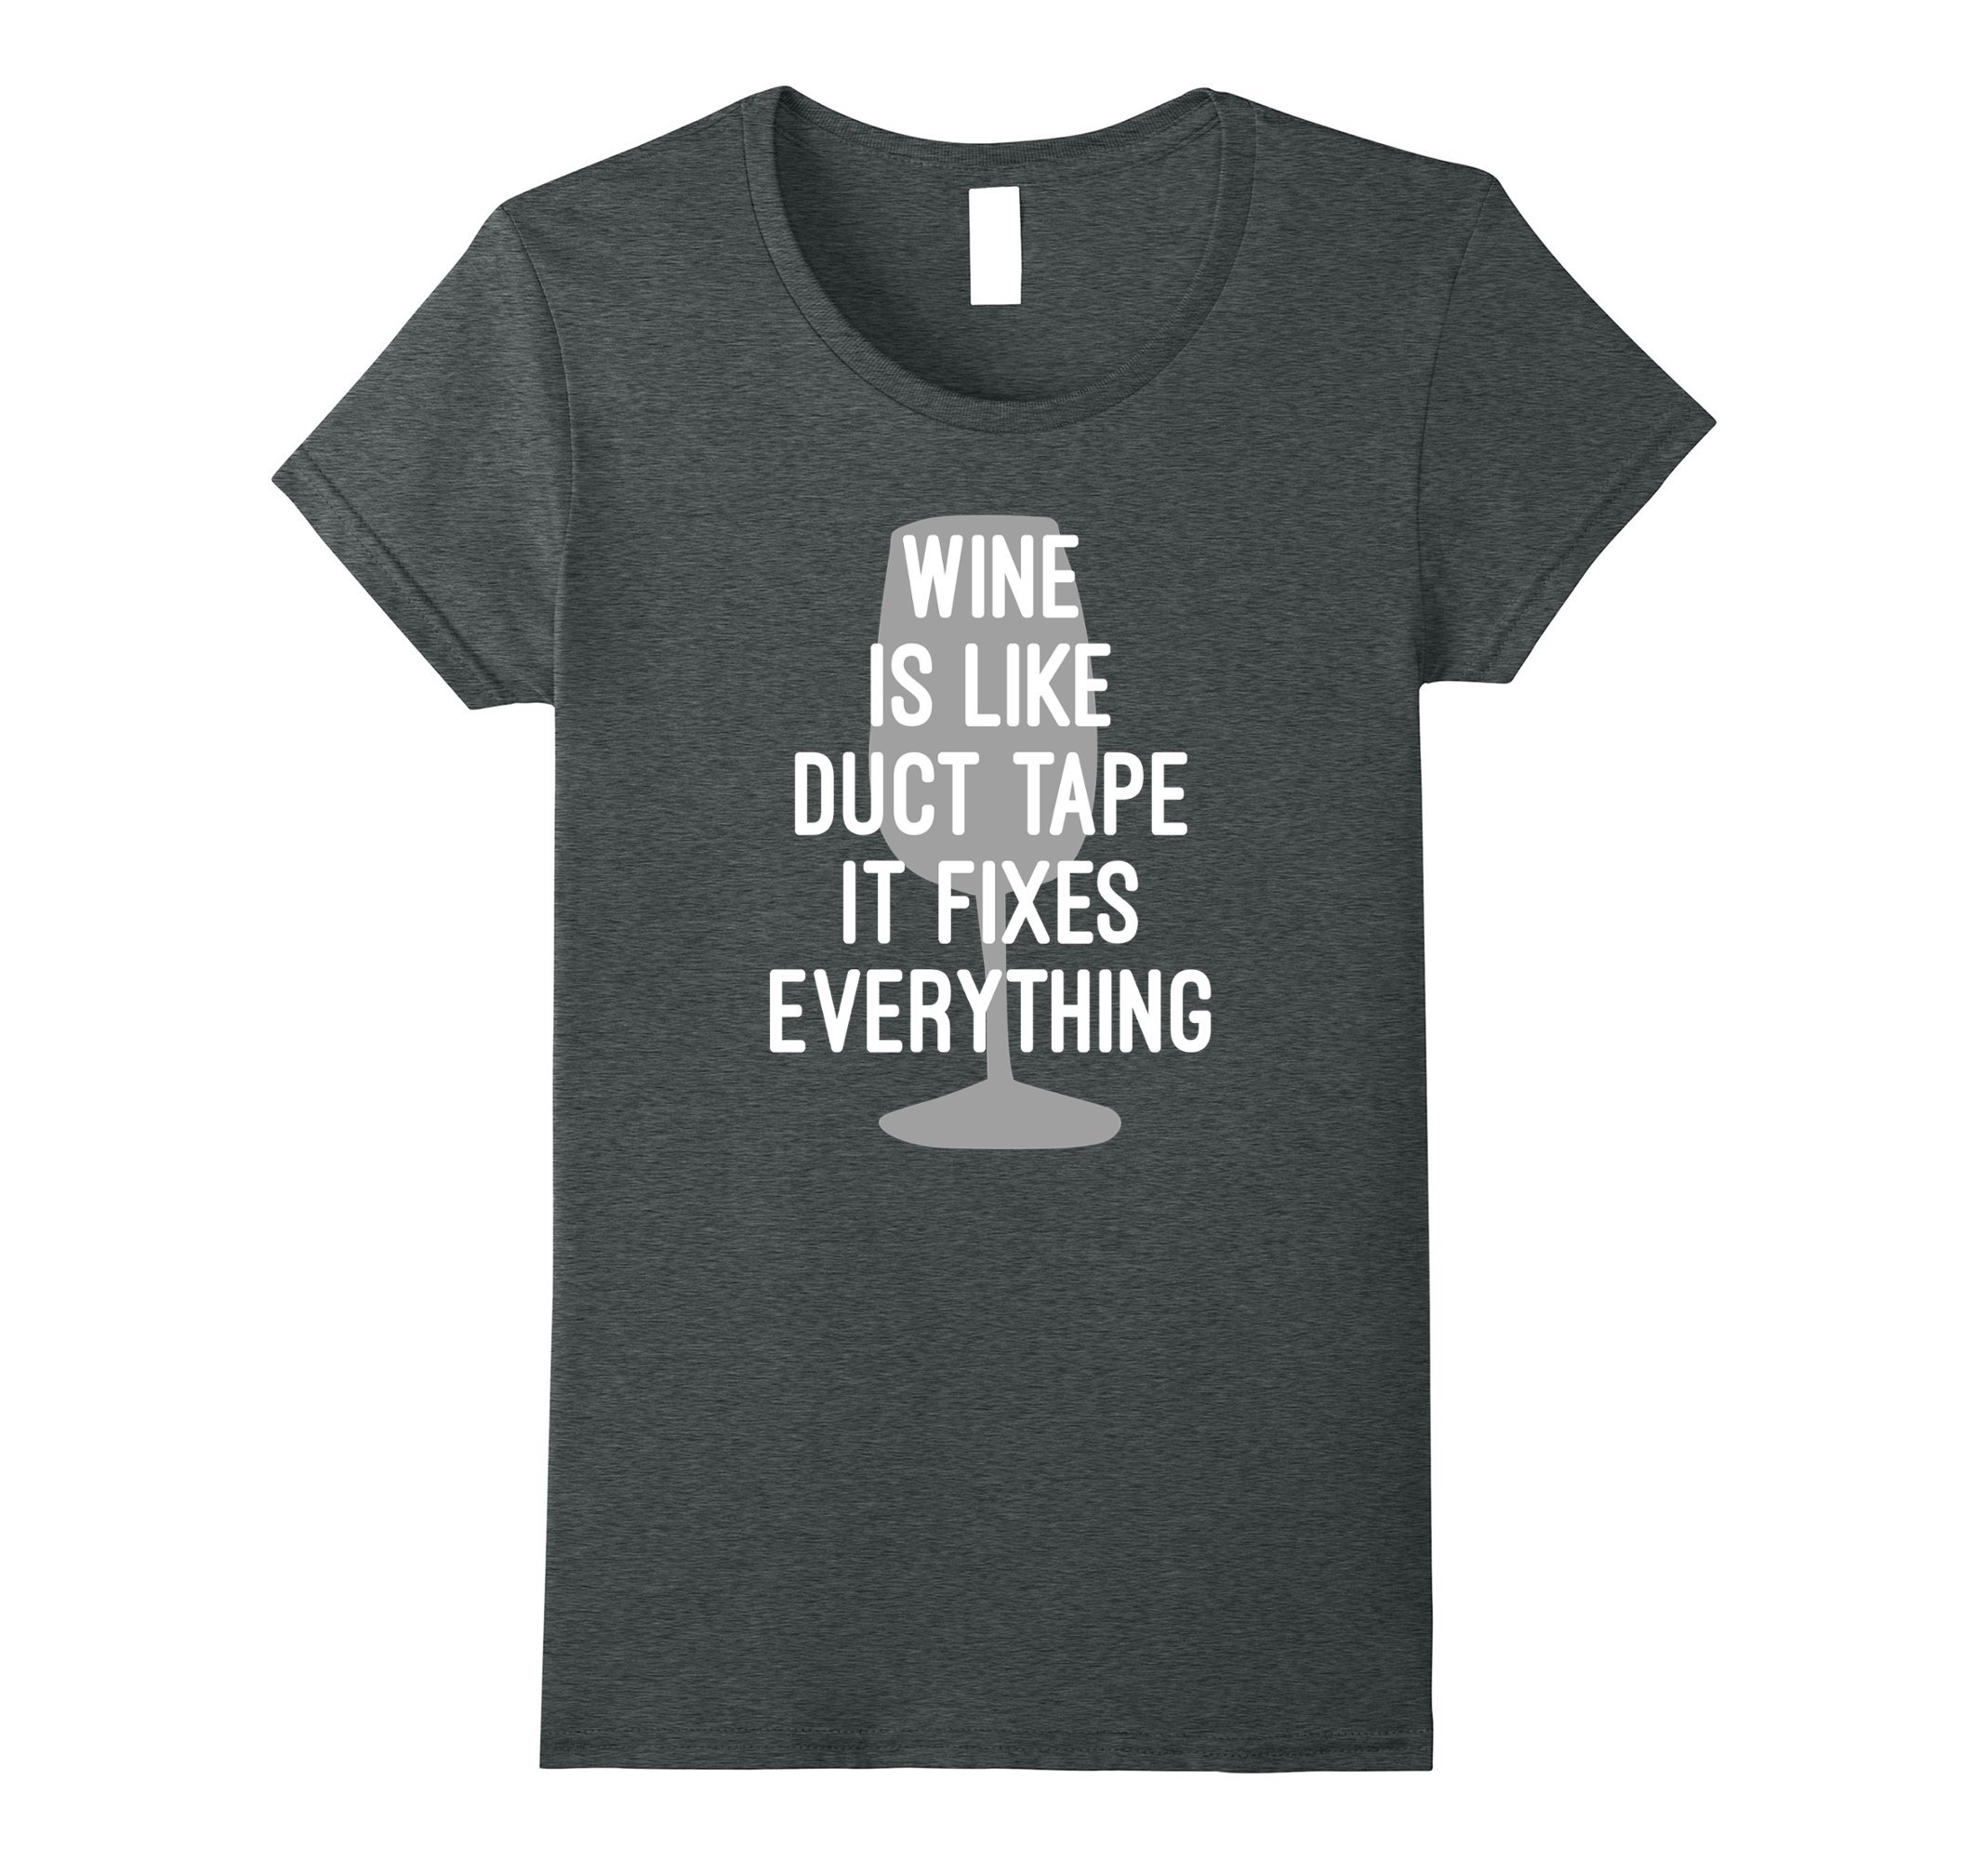 Womens Wine Is Like Duct Tape It Fixes Everything T-Shirt Medium Dark Heather by Funny Wine Shirt / Funny Wine Gift